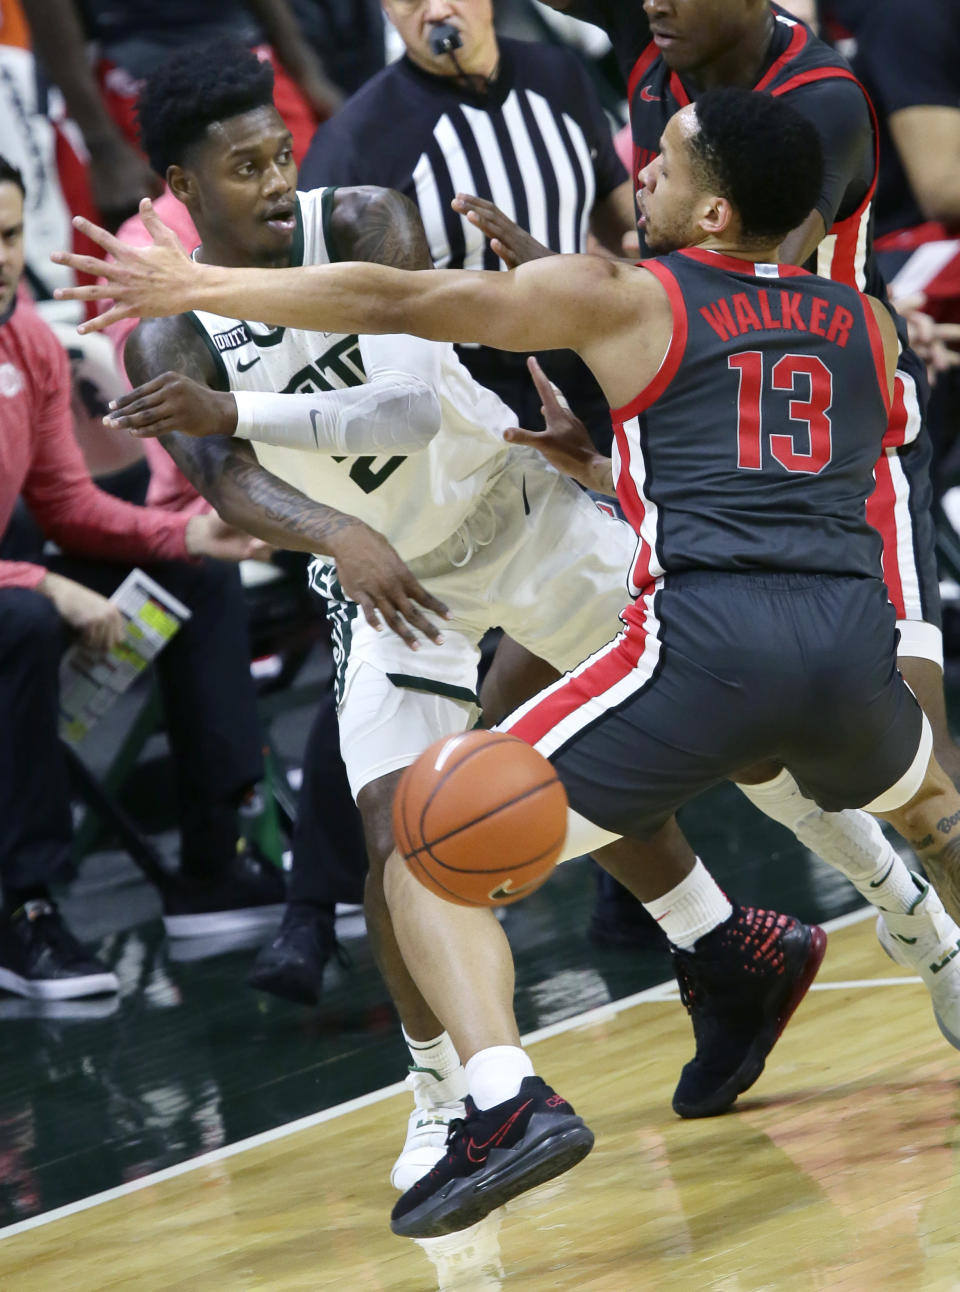 Michigan State guard Rocket Watts (2) passes the ball past Ohio State guard CJ Walker (13) during the first half of an NCAA college basketball game Thursday, Feb. 25, 2021, in East Lansing, Mich. (AP Photo/Duane Burleson)